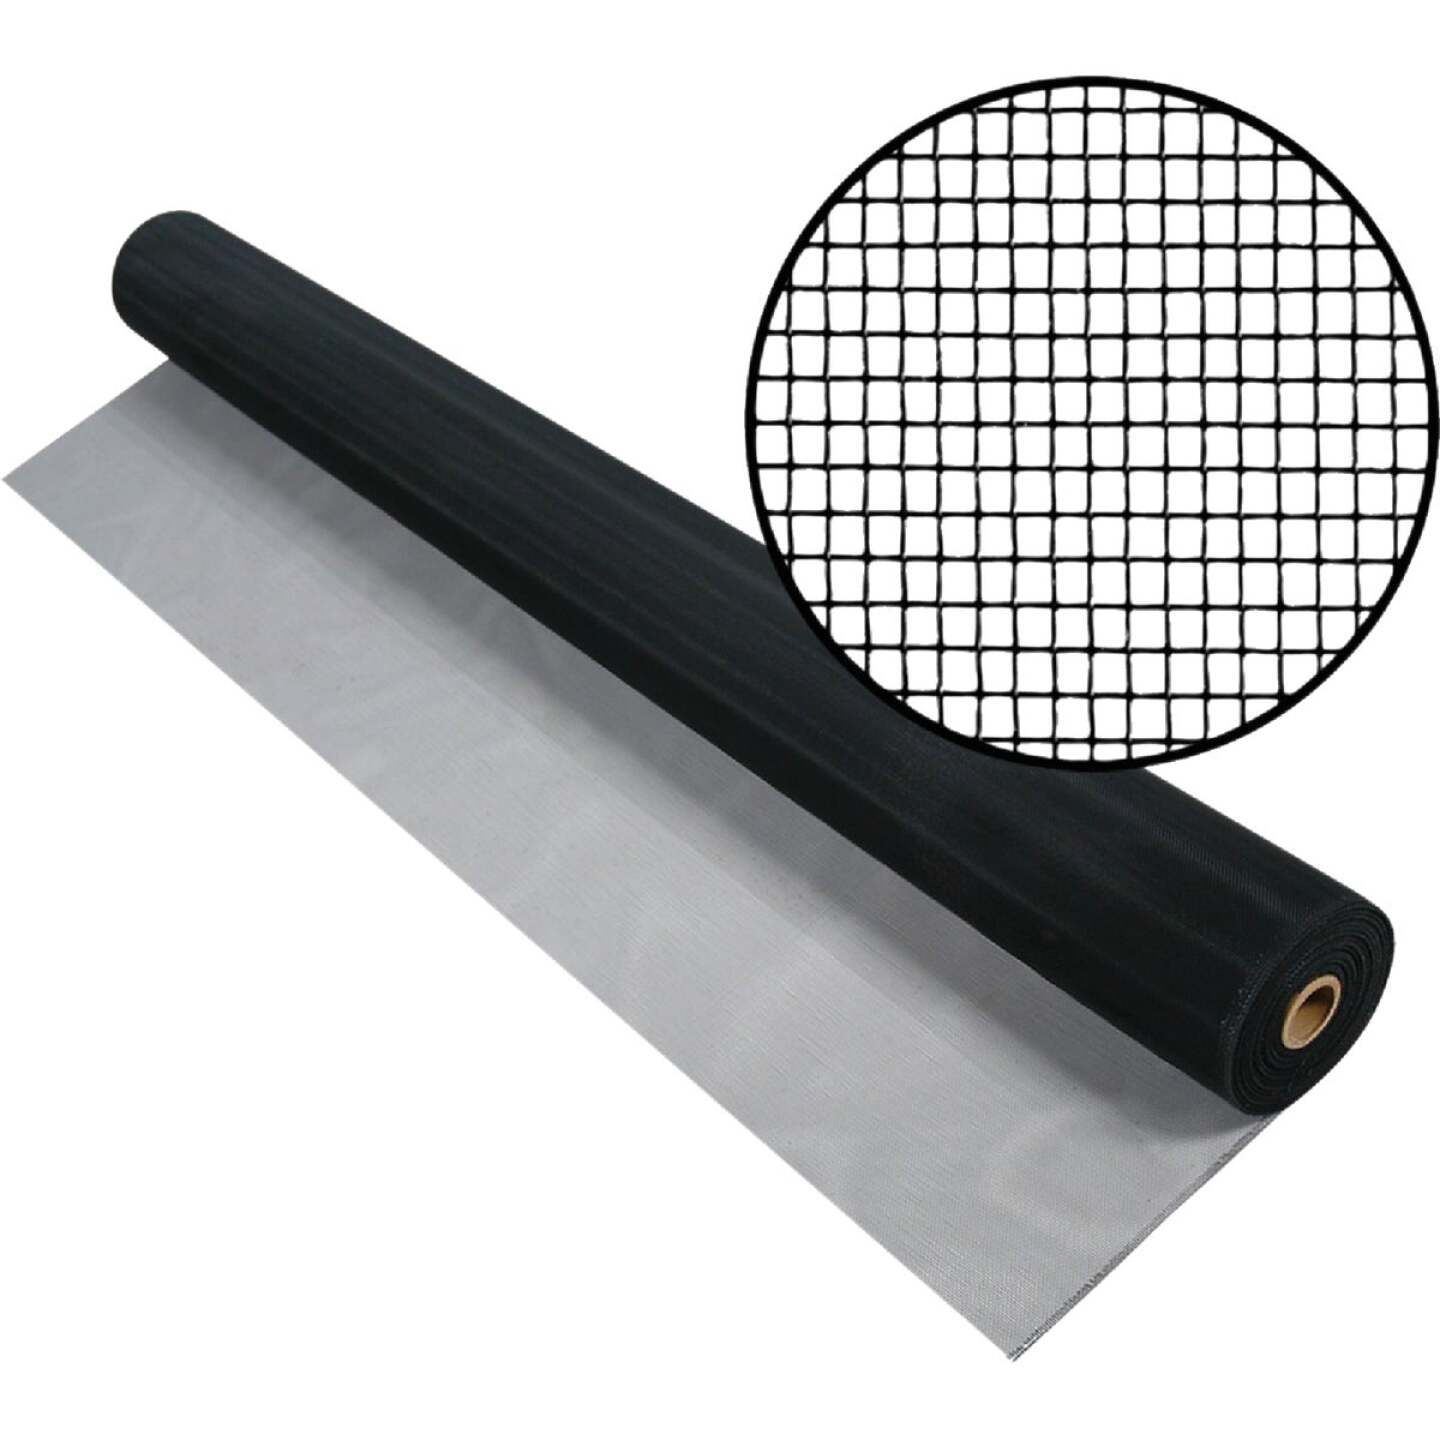 Phifer 36 In. x 84 In. Charcoal Aluminum Screen Ready Rolls Image 1